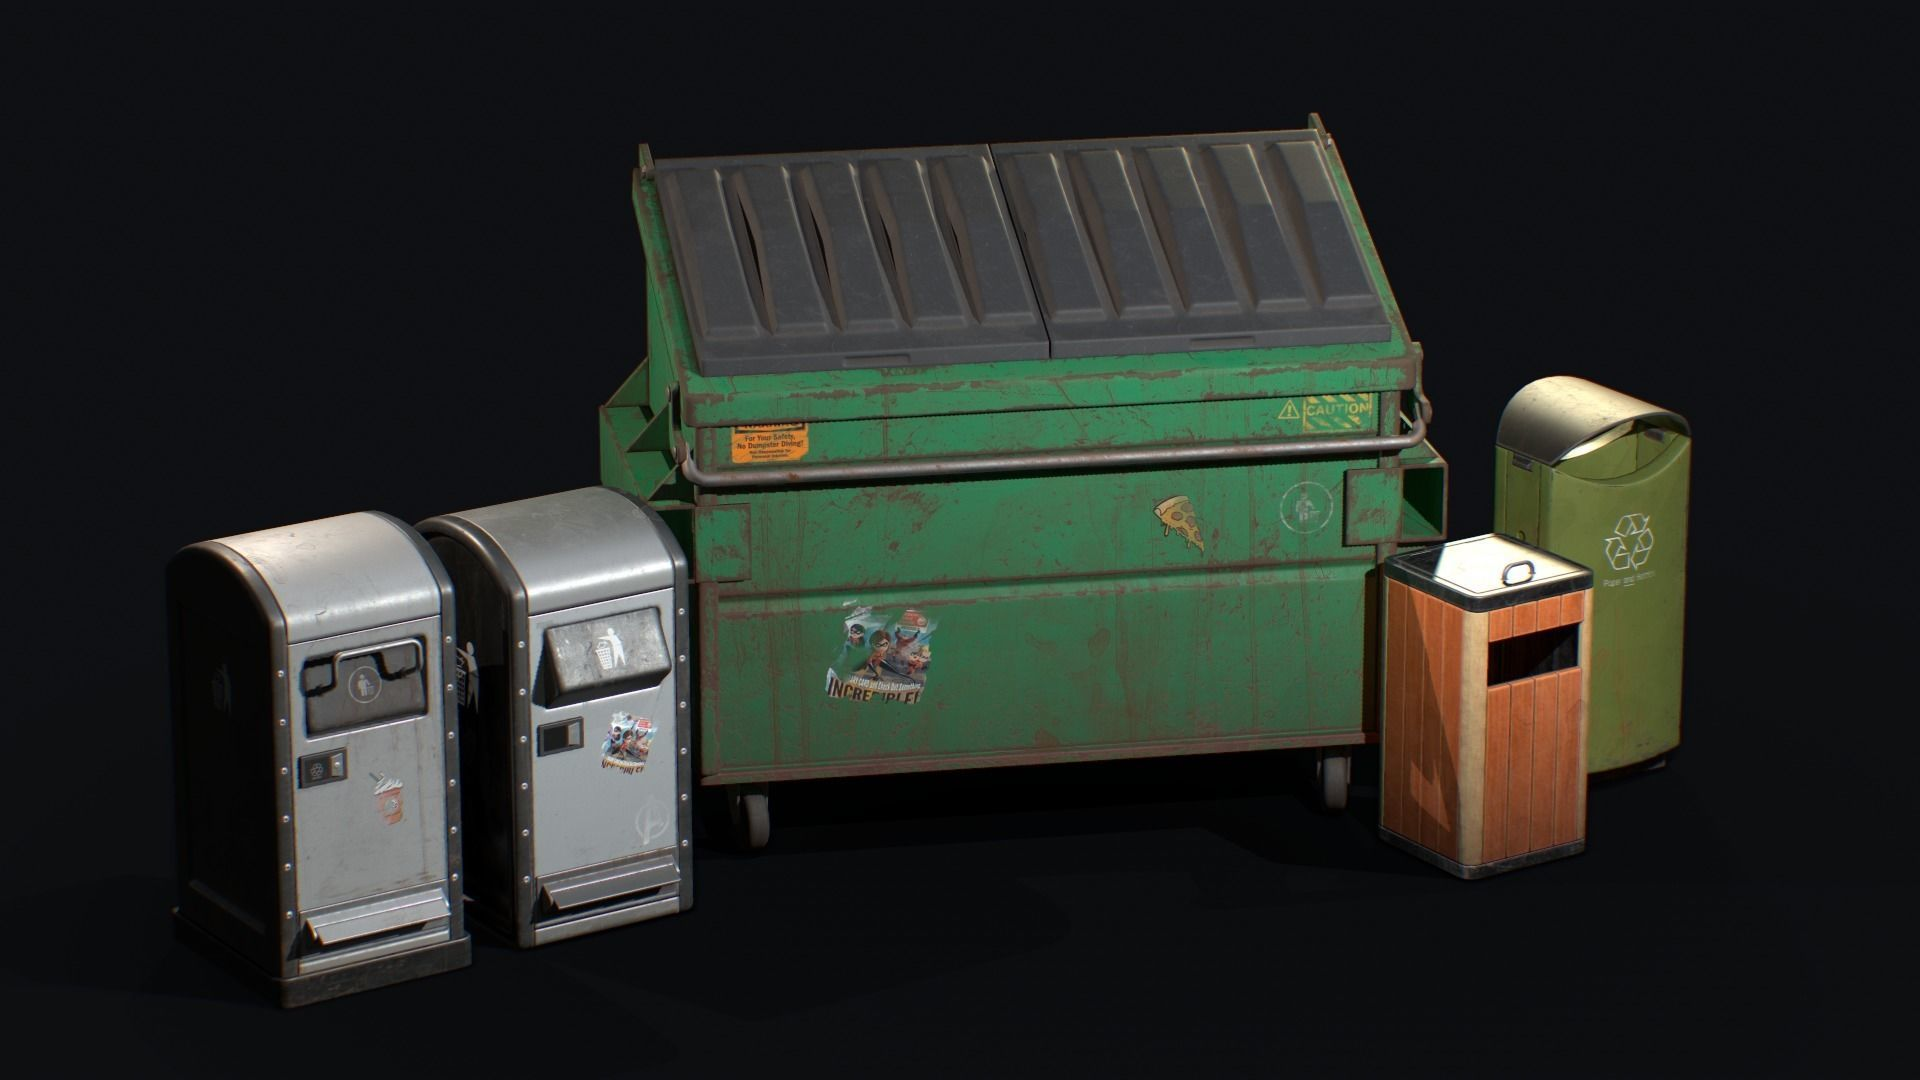 Dustbin and Dumpster